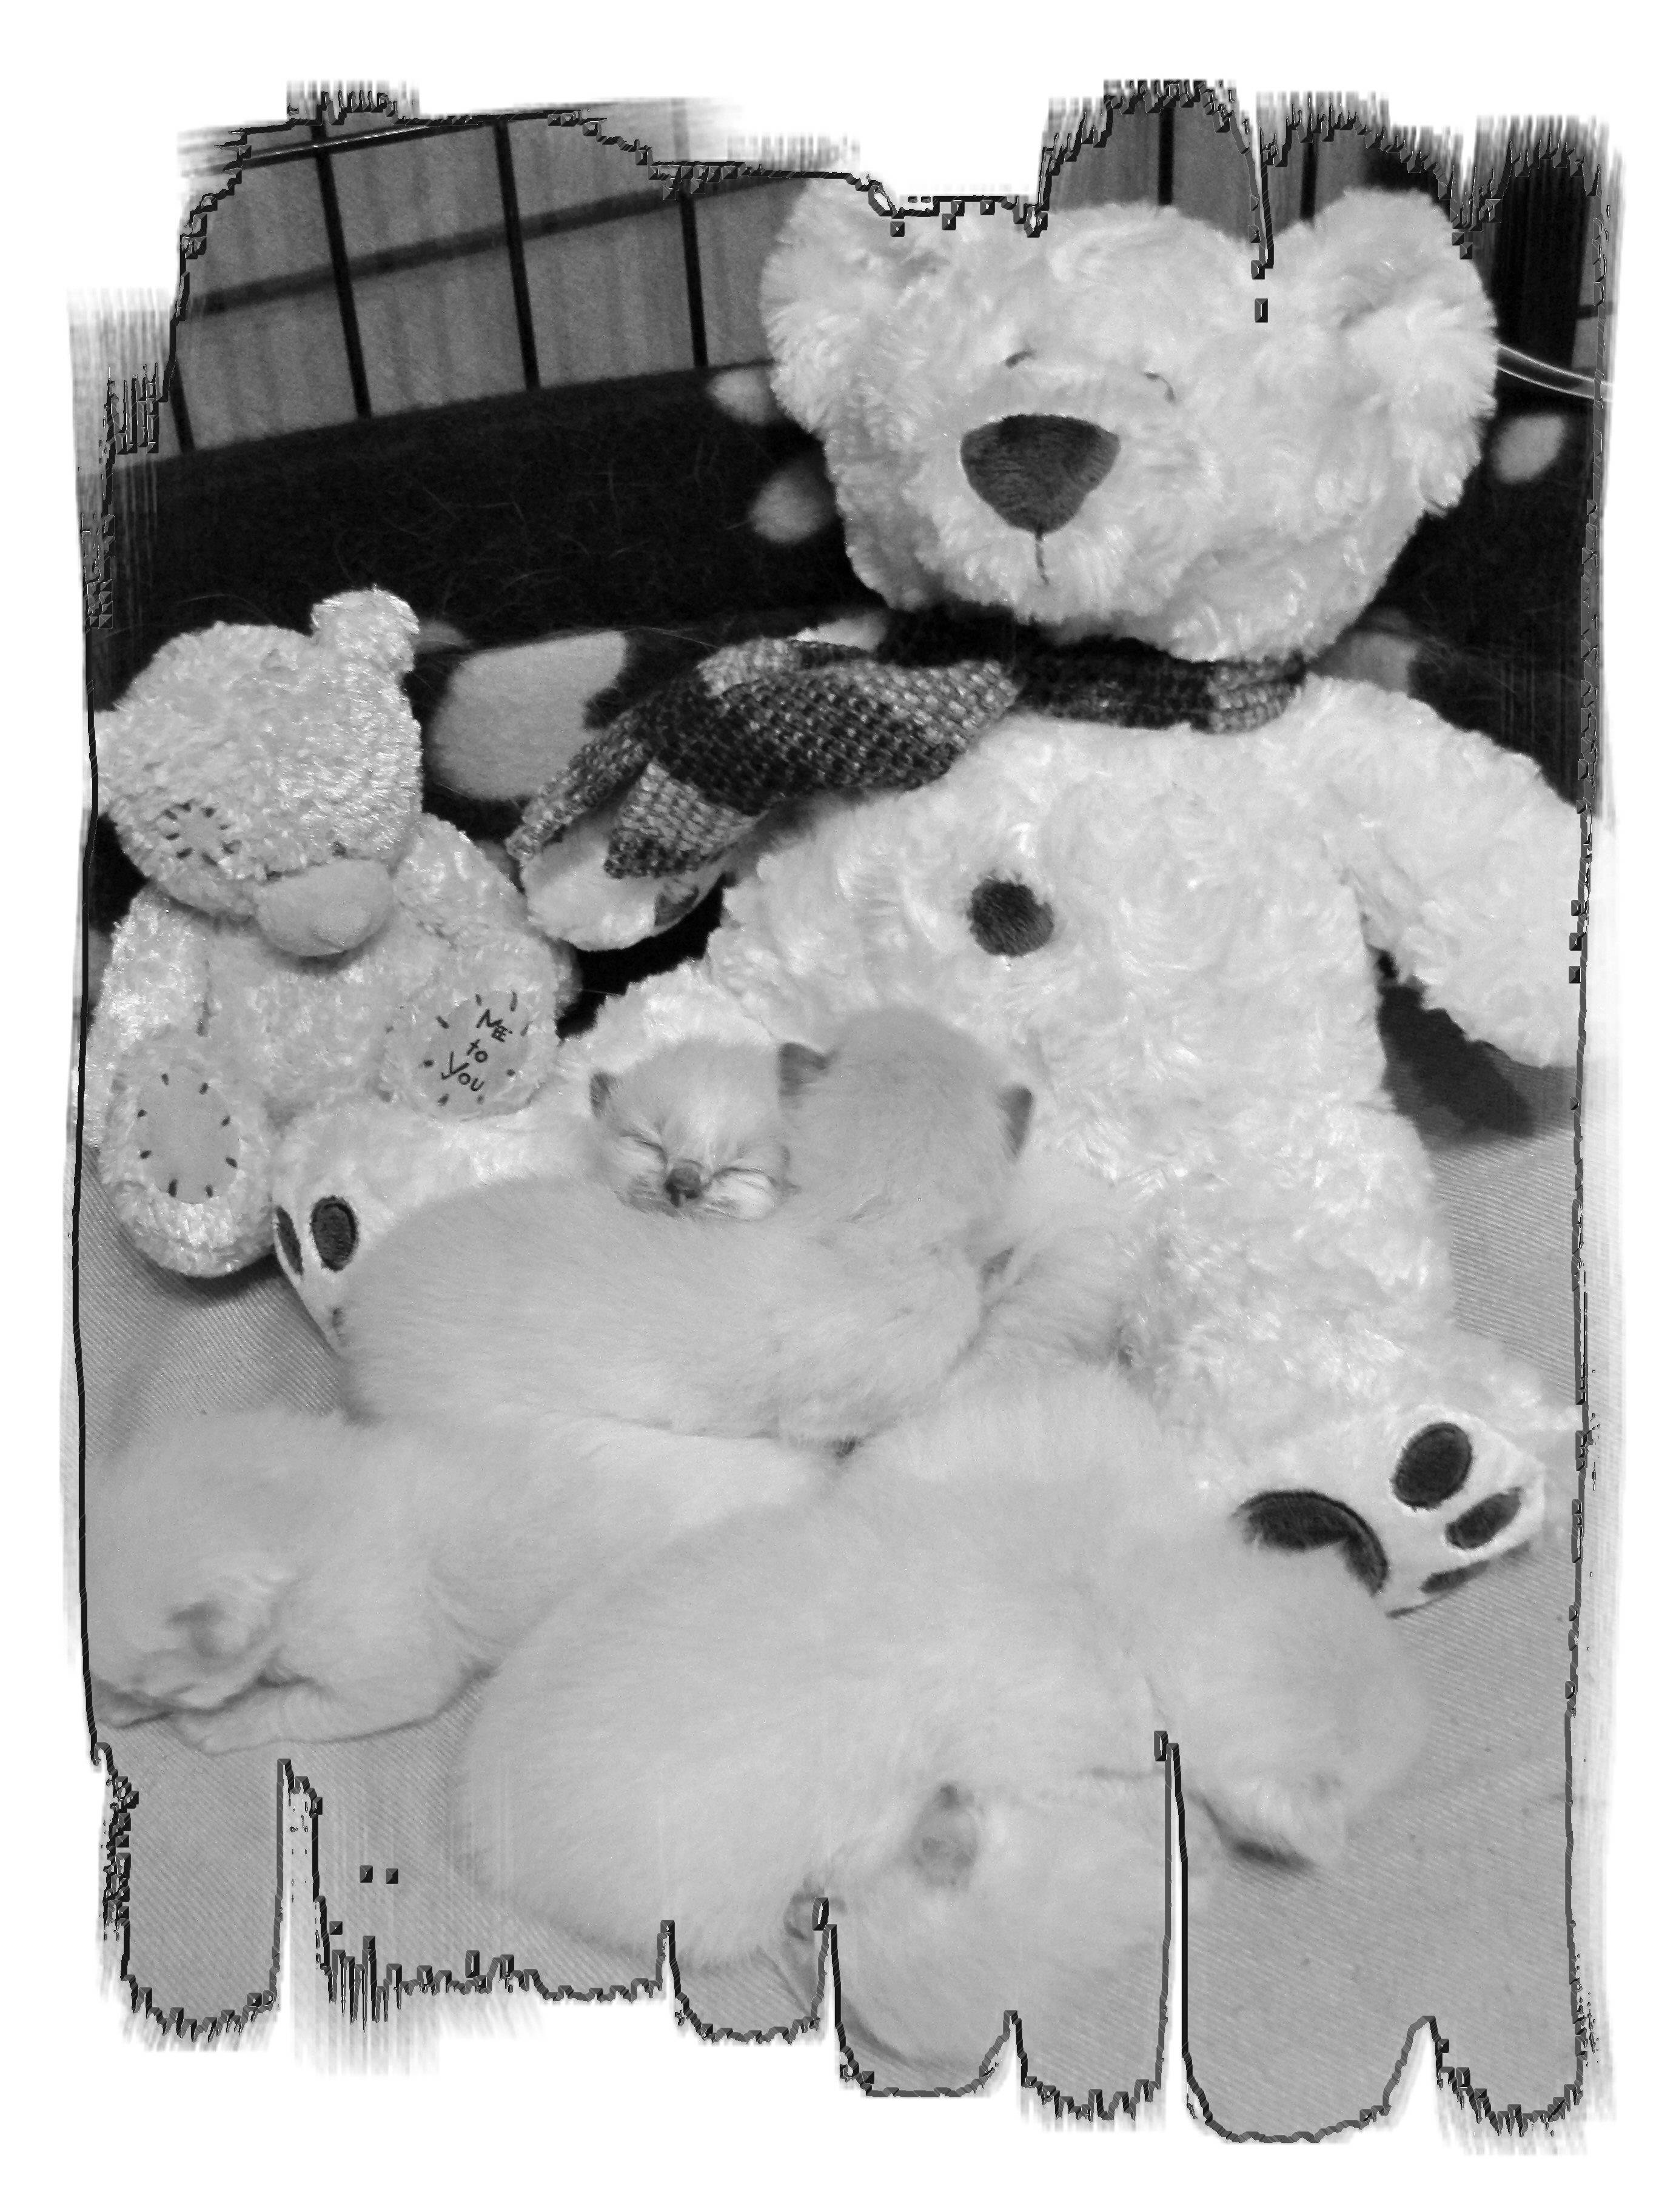 Big Ted & Little Ted  looking after the babies